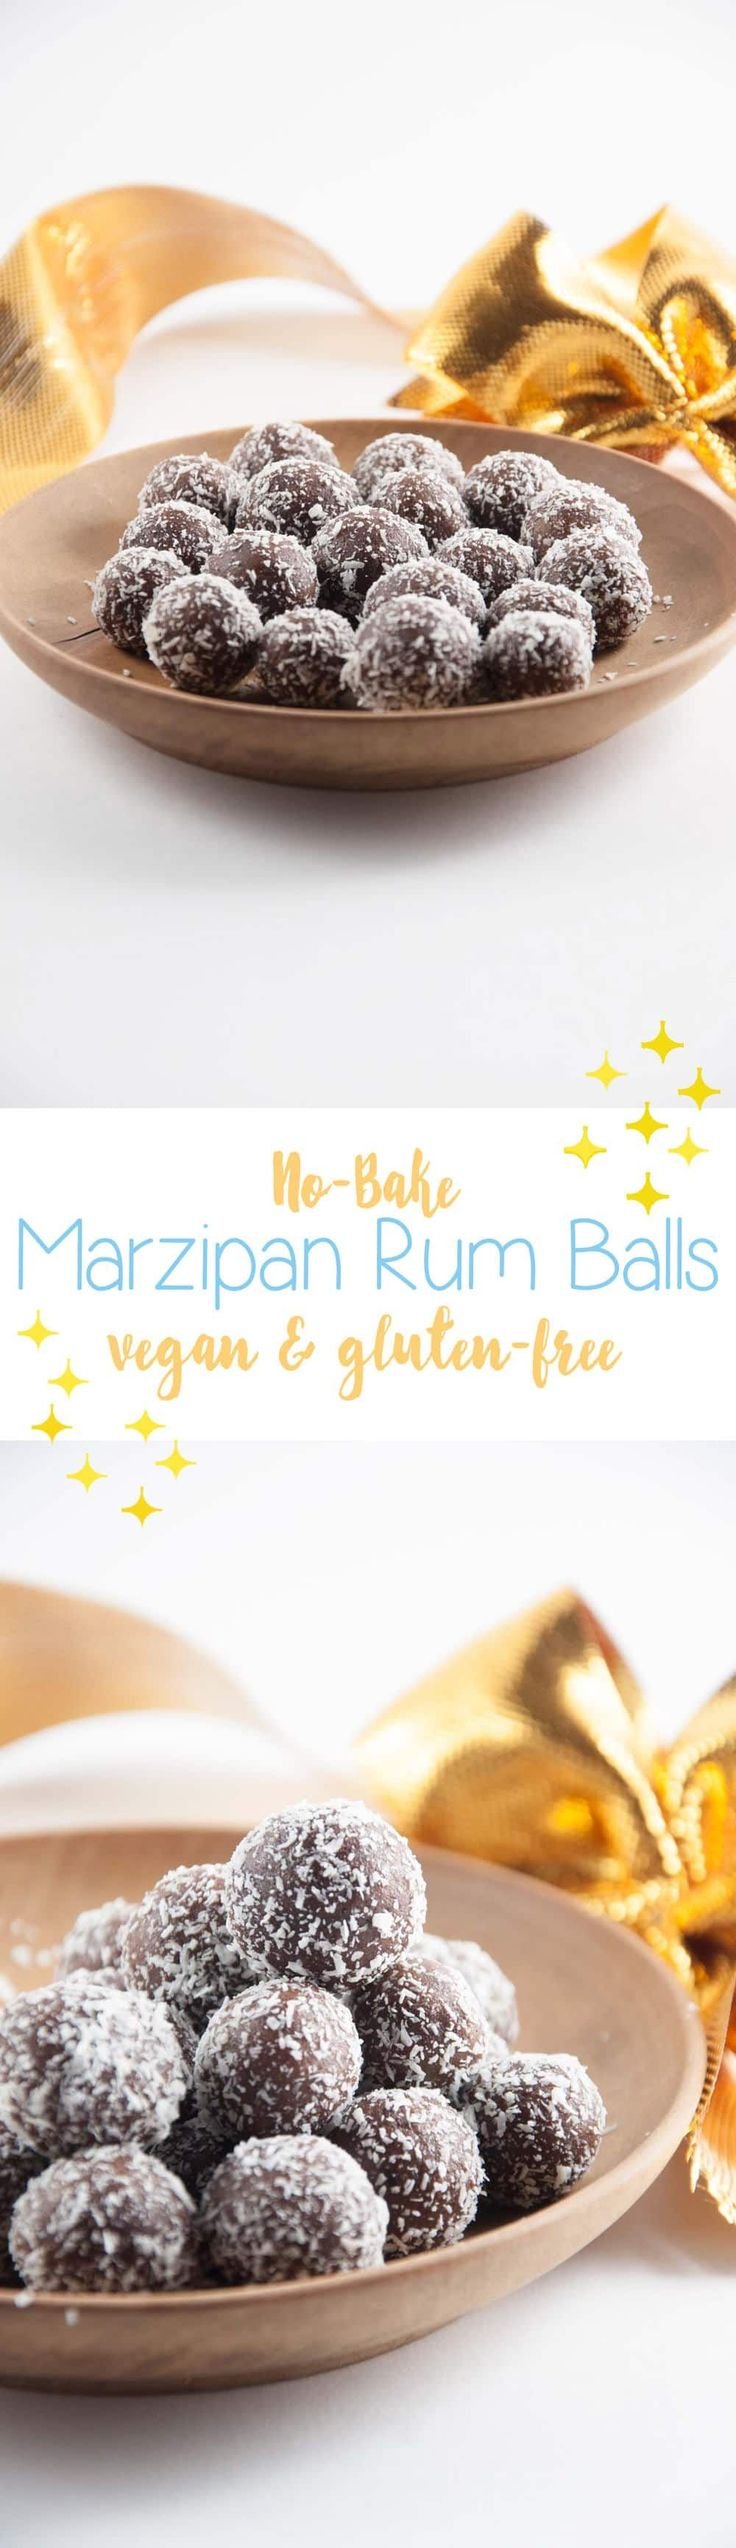 Vegan & Gluten-free No-Bake Marzipan Rum Balls - perfect for the holidays! They are super easy to make and don't require an oven. Can be made in 10 minutes.